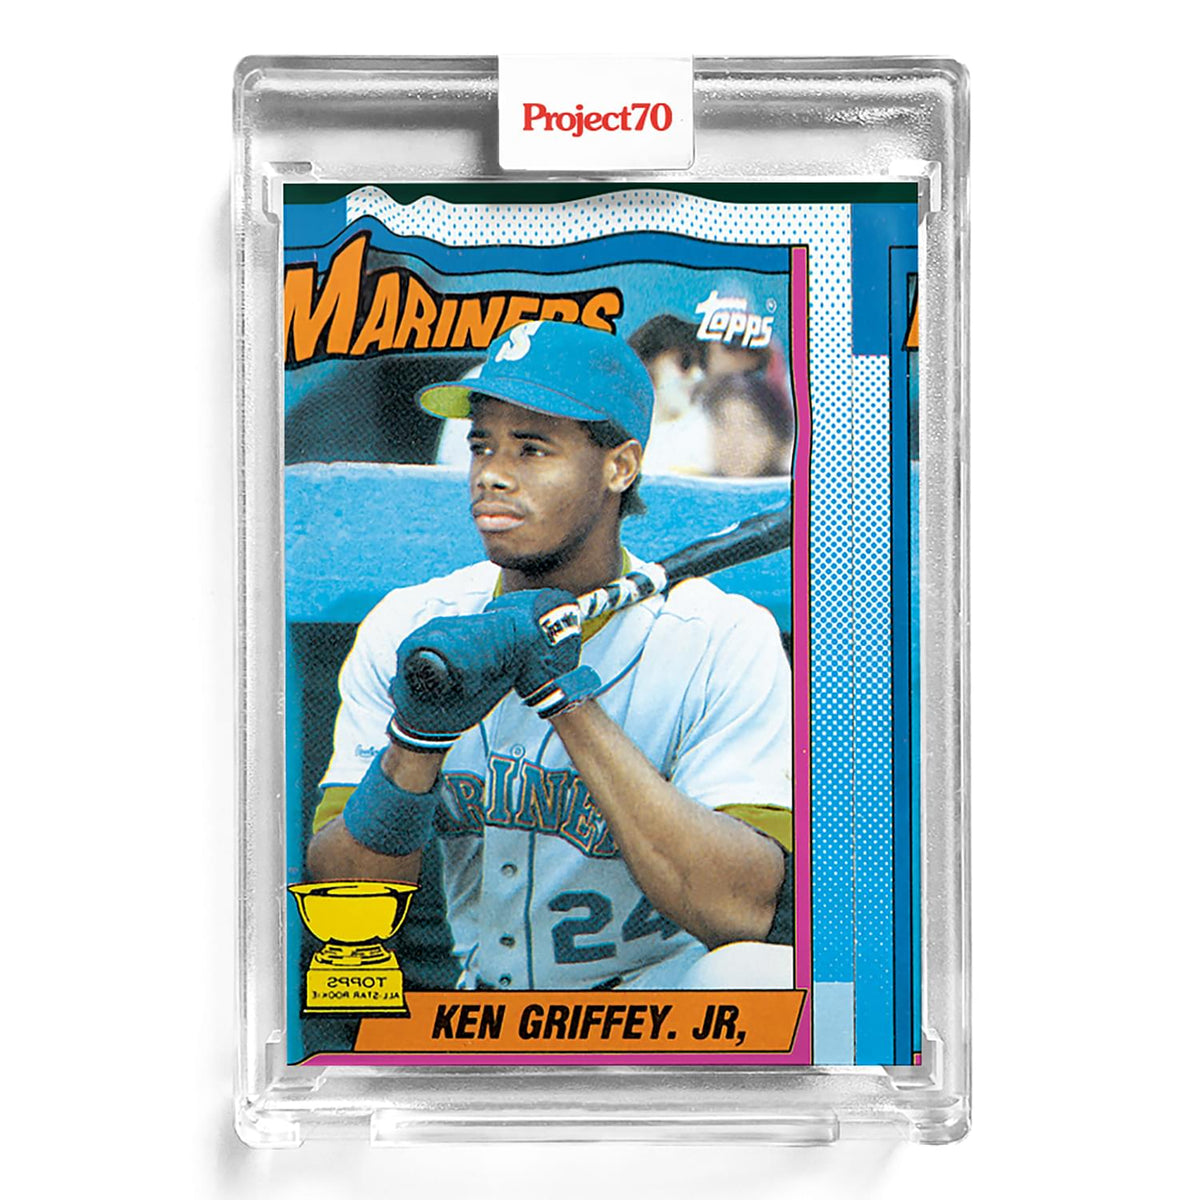 Topps Project70 Card 6 - 1990 Ken Griffey Jr. by Bobby Hundreds